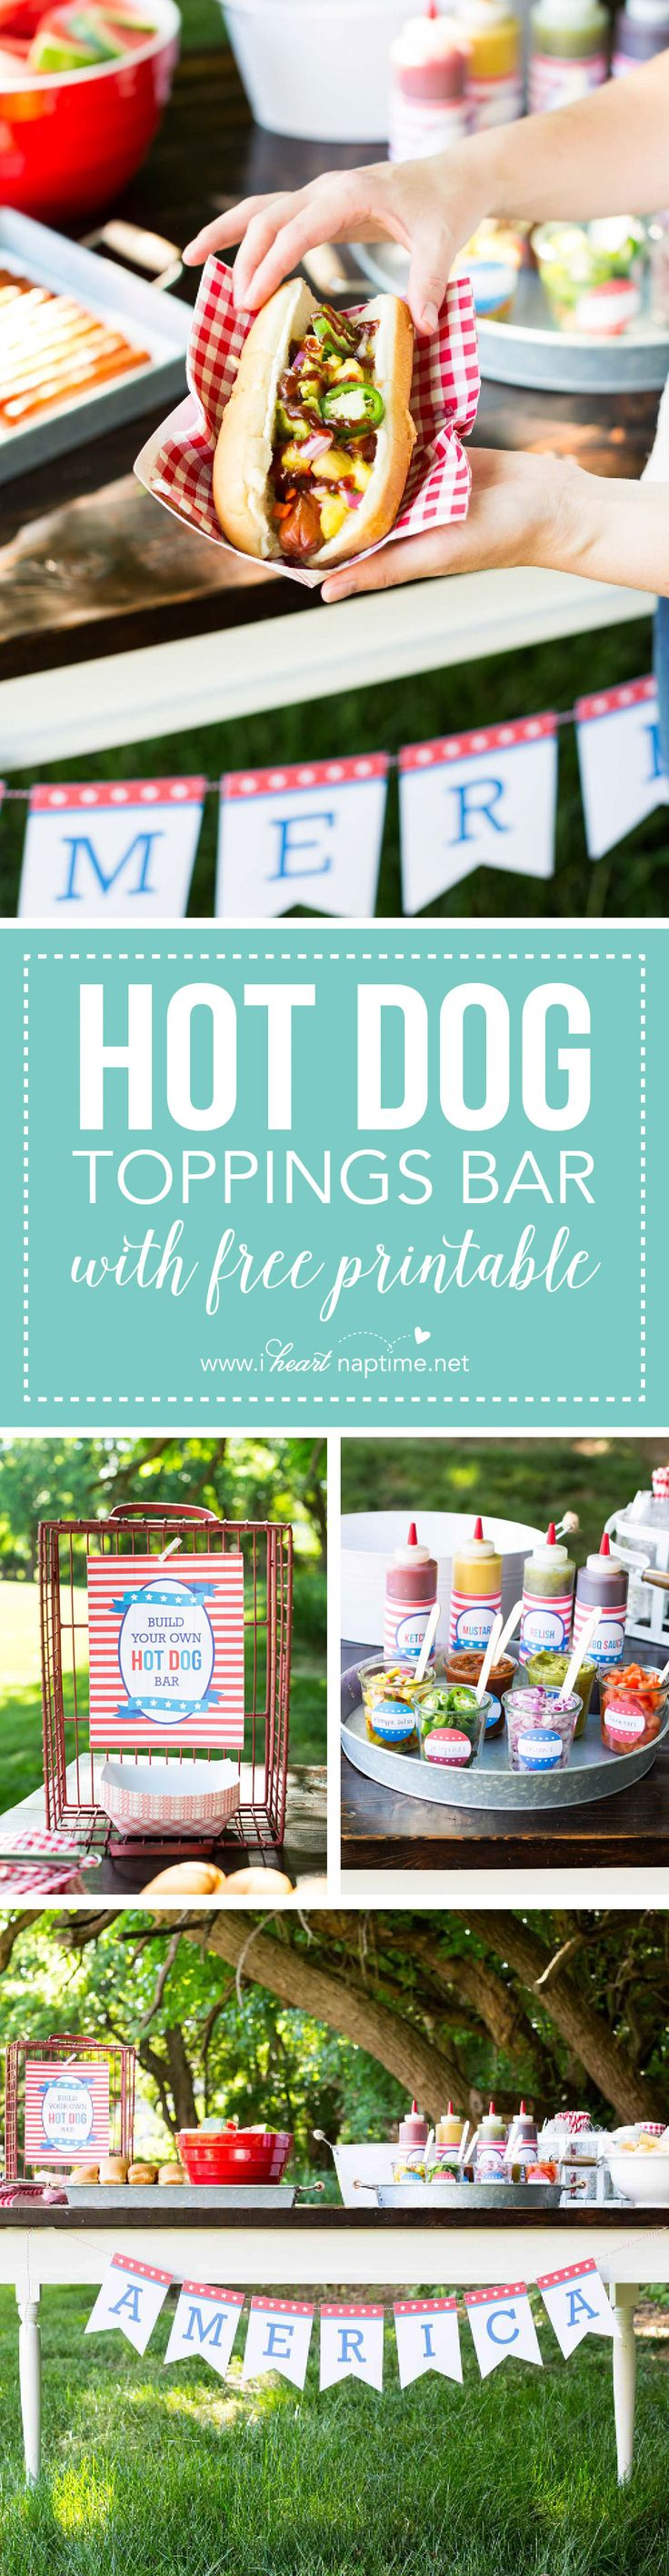 Hot Dog Toppings Bar for the 4th of July (free printables available) ...the perfect way to celebrate with friends and family.